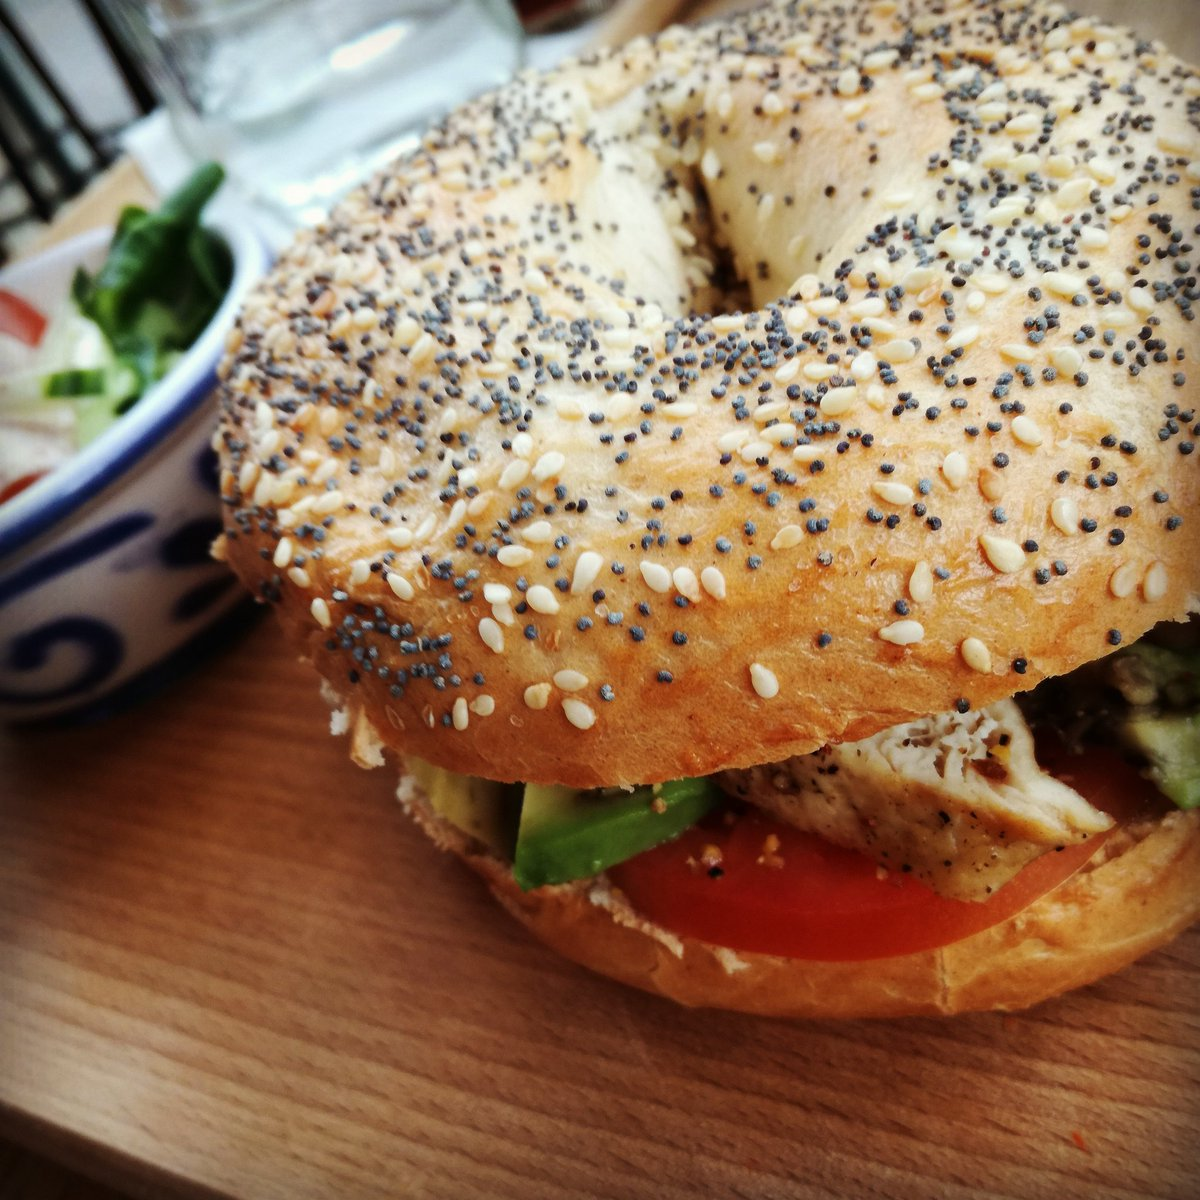 #Bagel #food #cooked